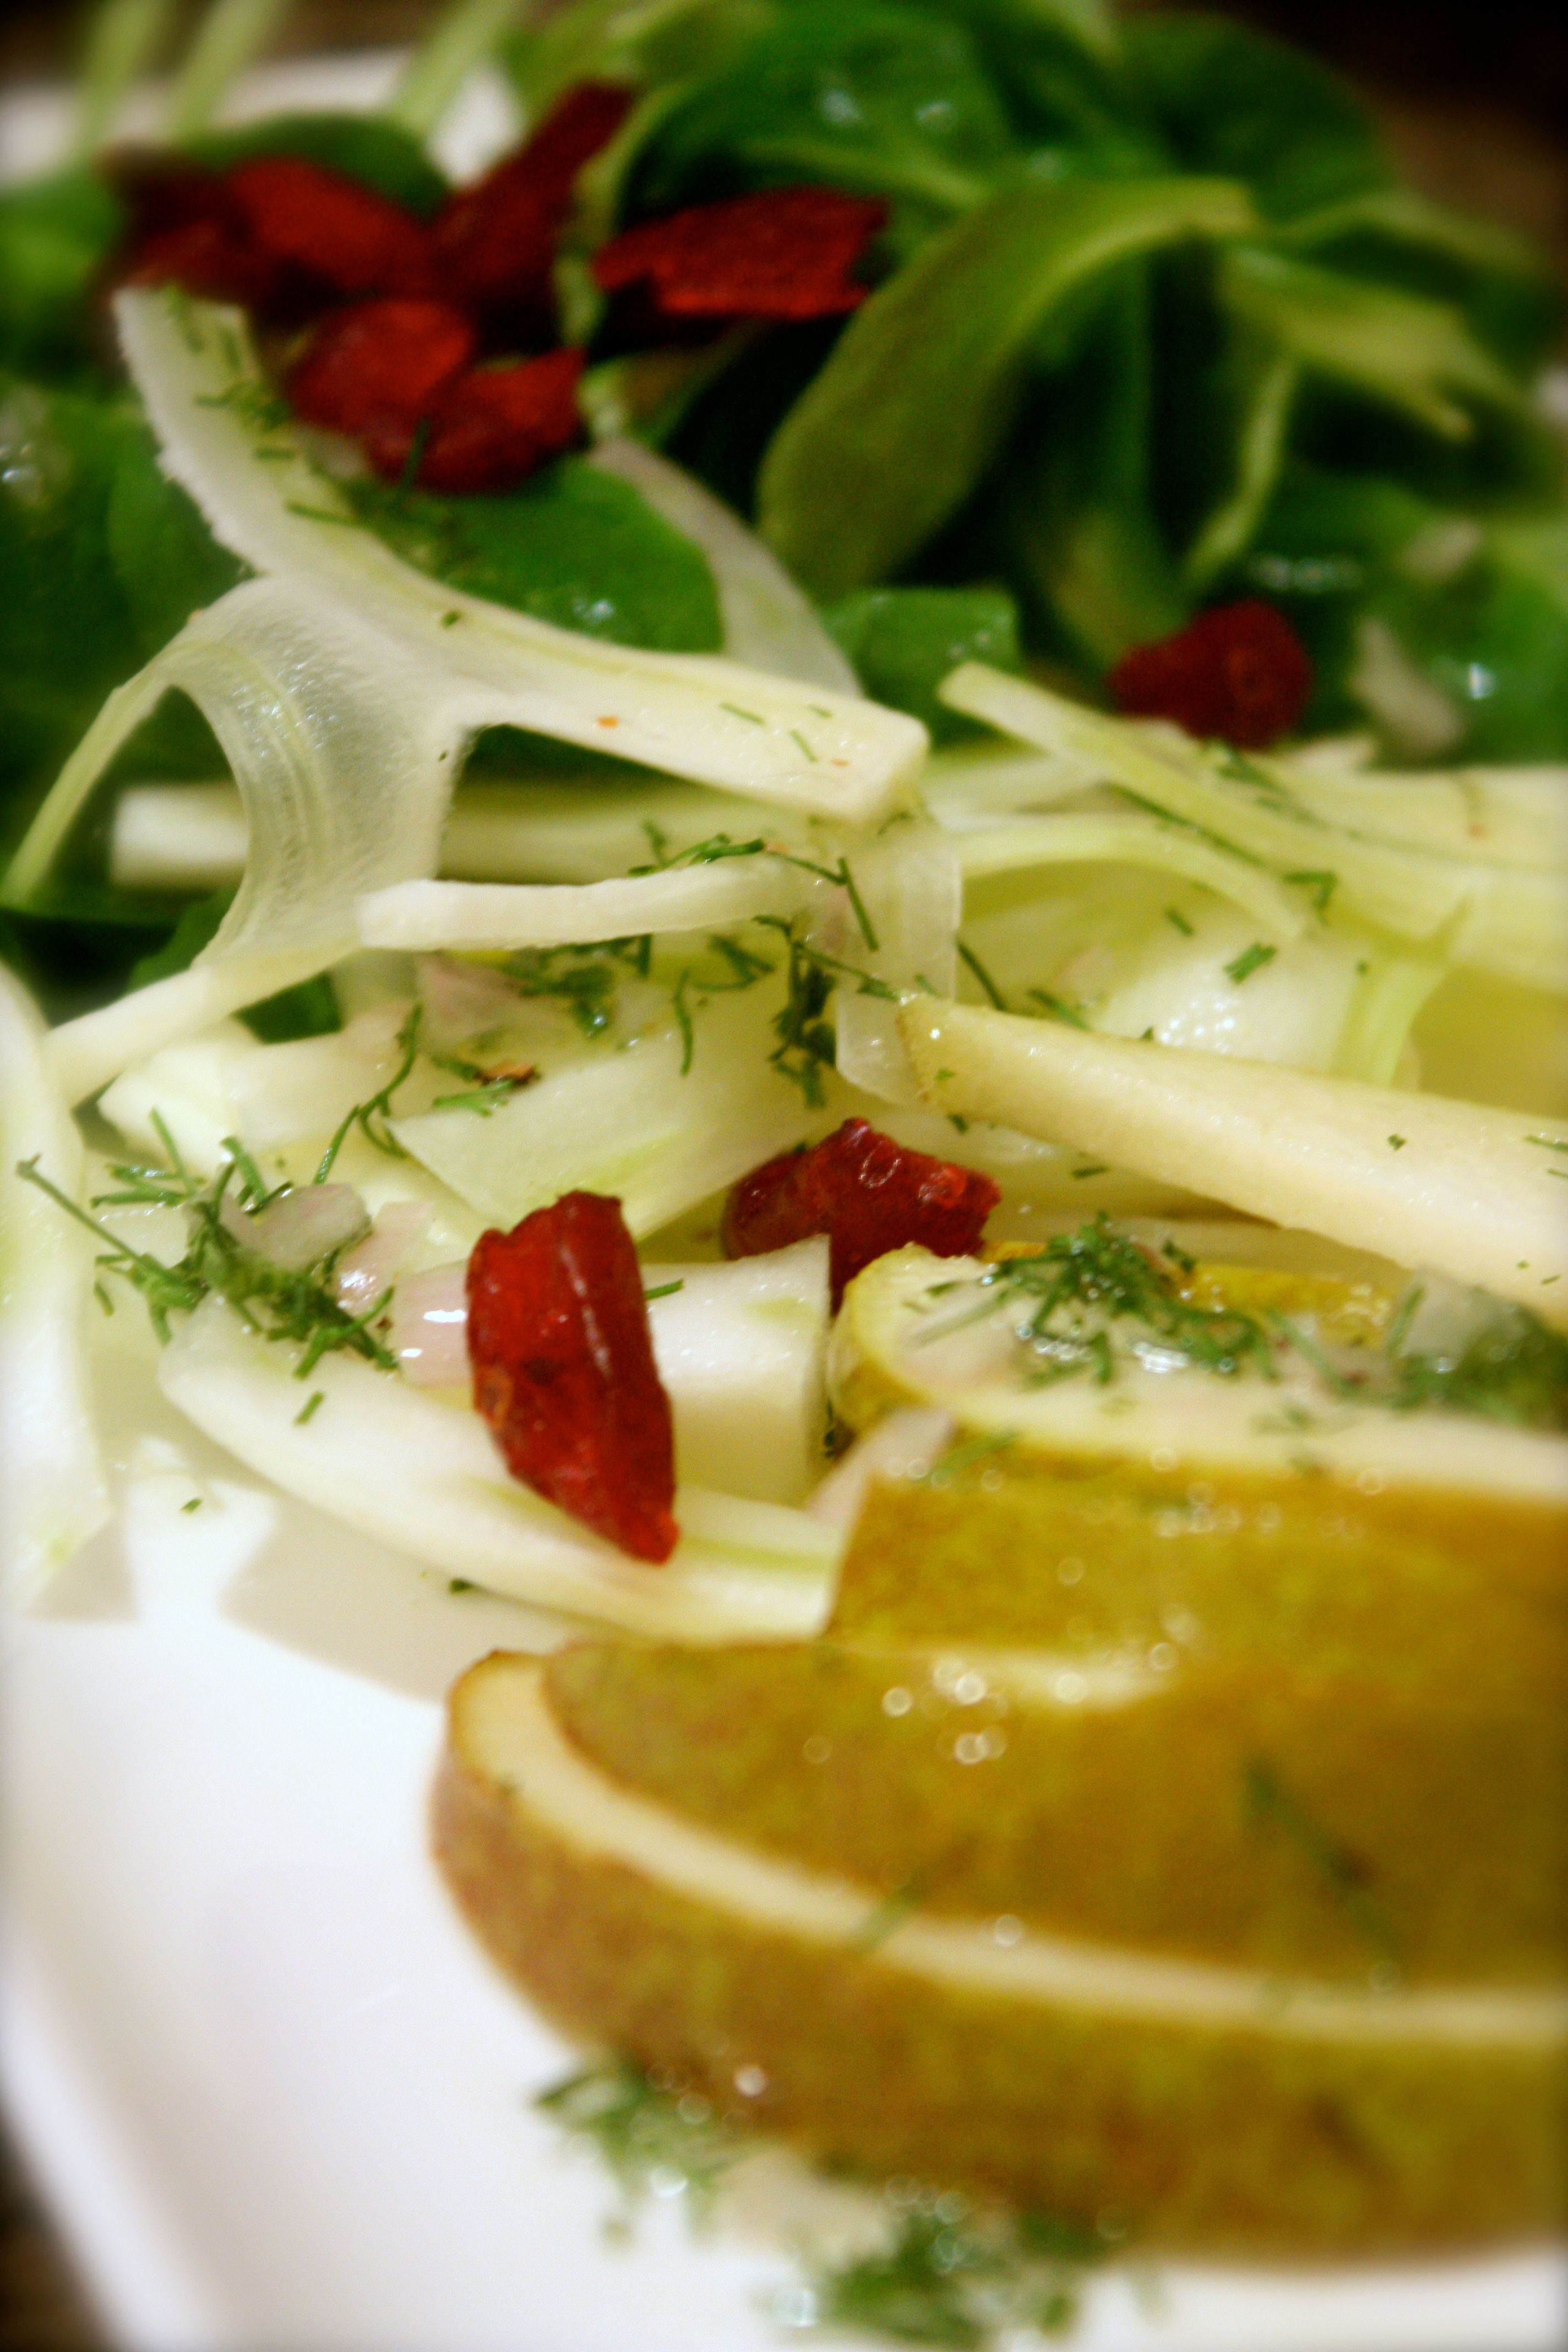 Mâche Salad with Fennel and Seckel Pears | via Tram Le, MS, RD, LD